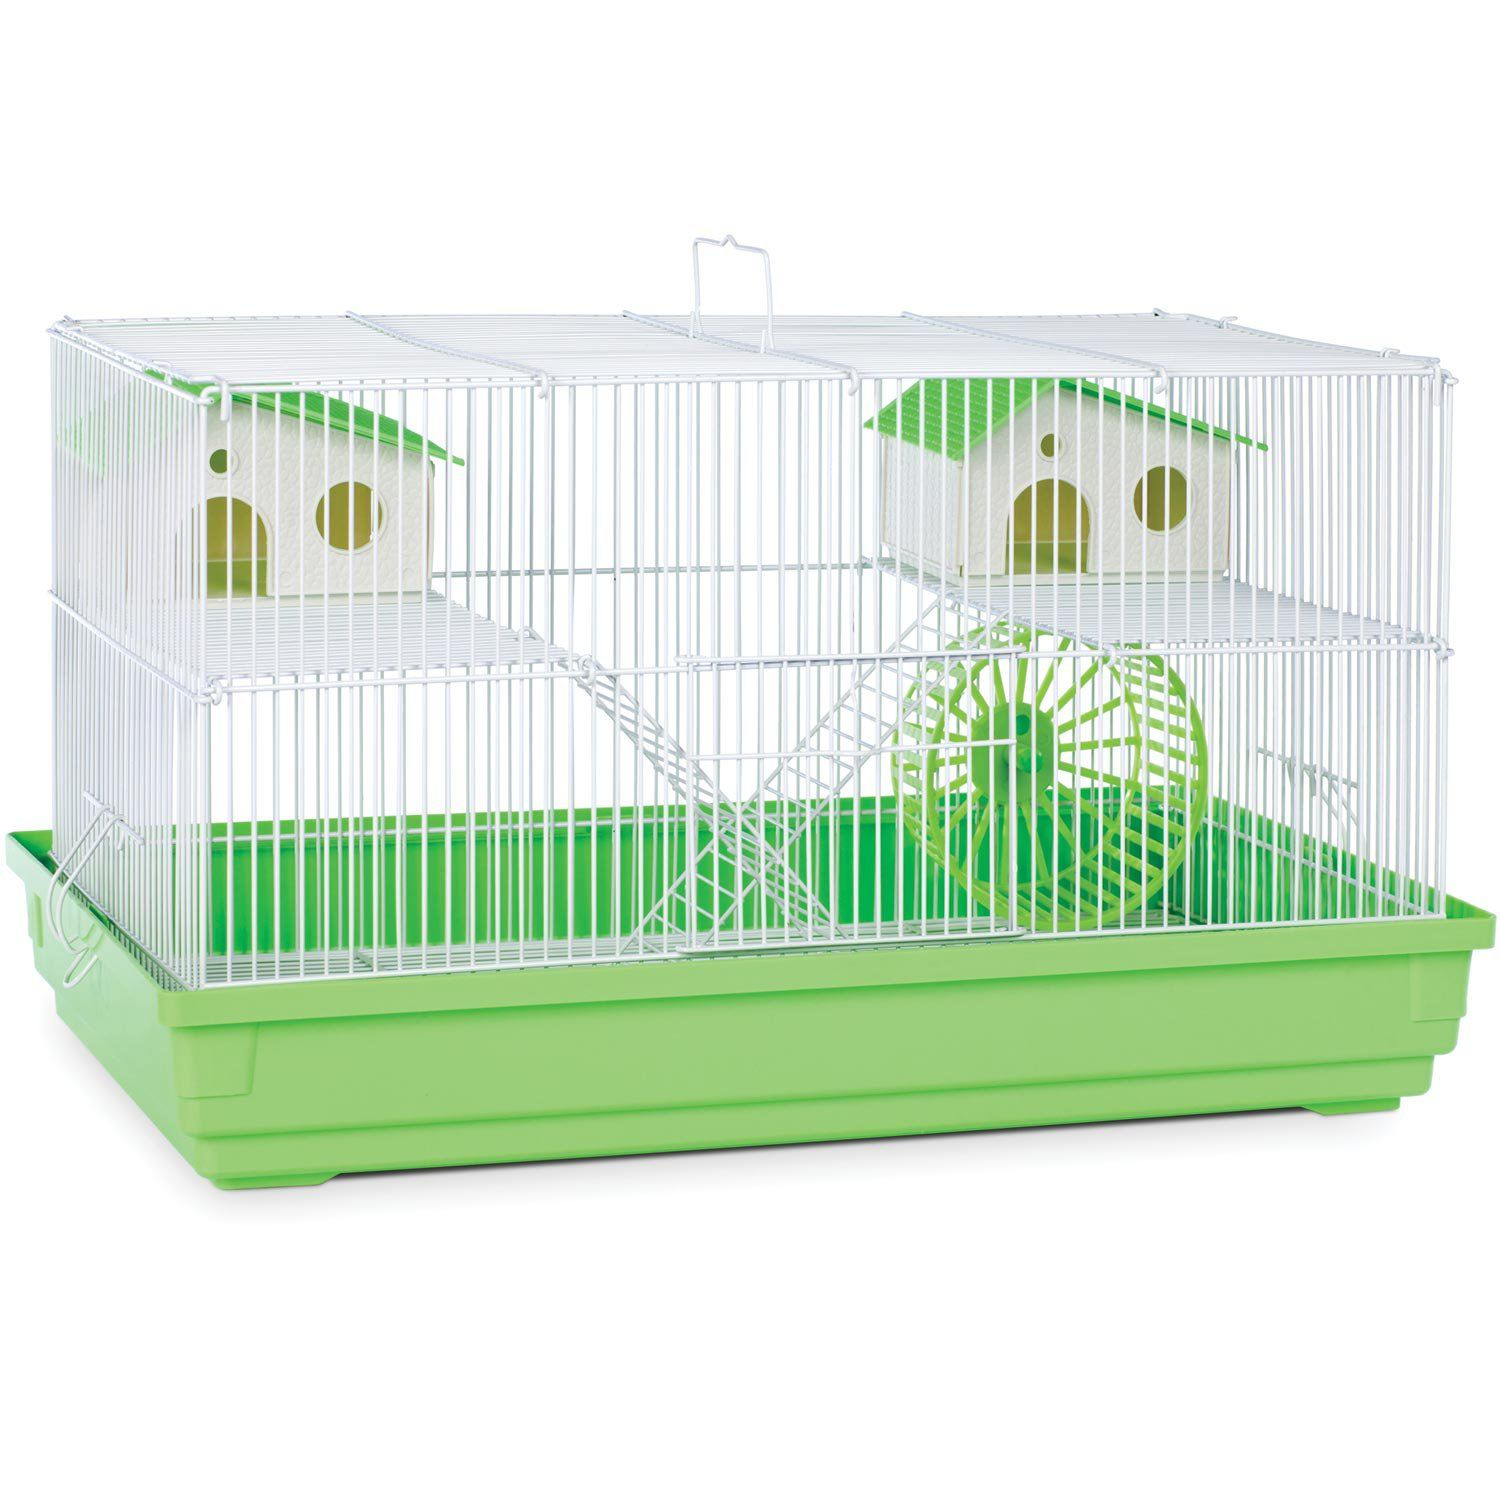 Prevue Hendryx Deluxe Small Animal Cage A Spacious And Complete Home For Your Hamster Or Gerbil Included Platforms A Gerbil Cages Small Animal Cage Pet Cage